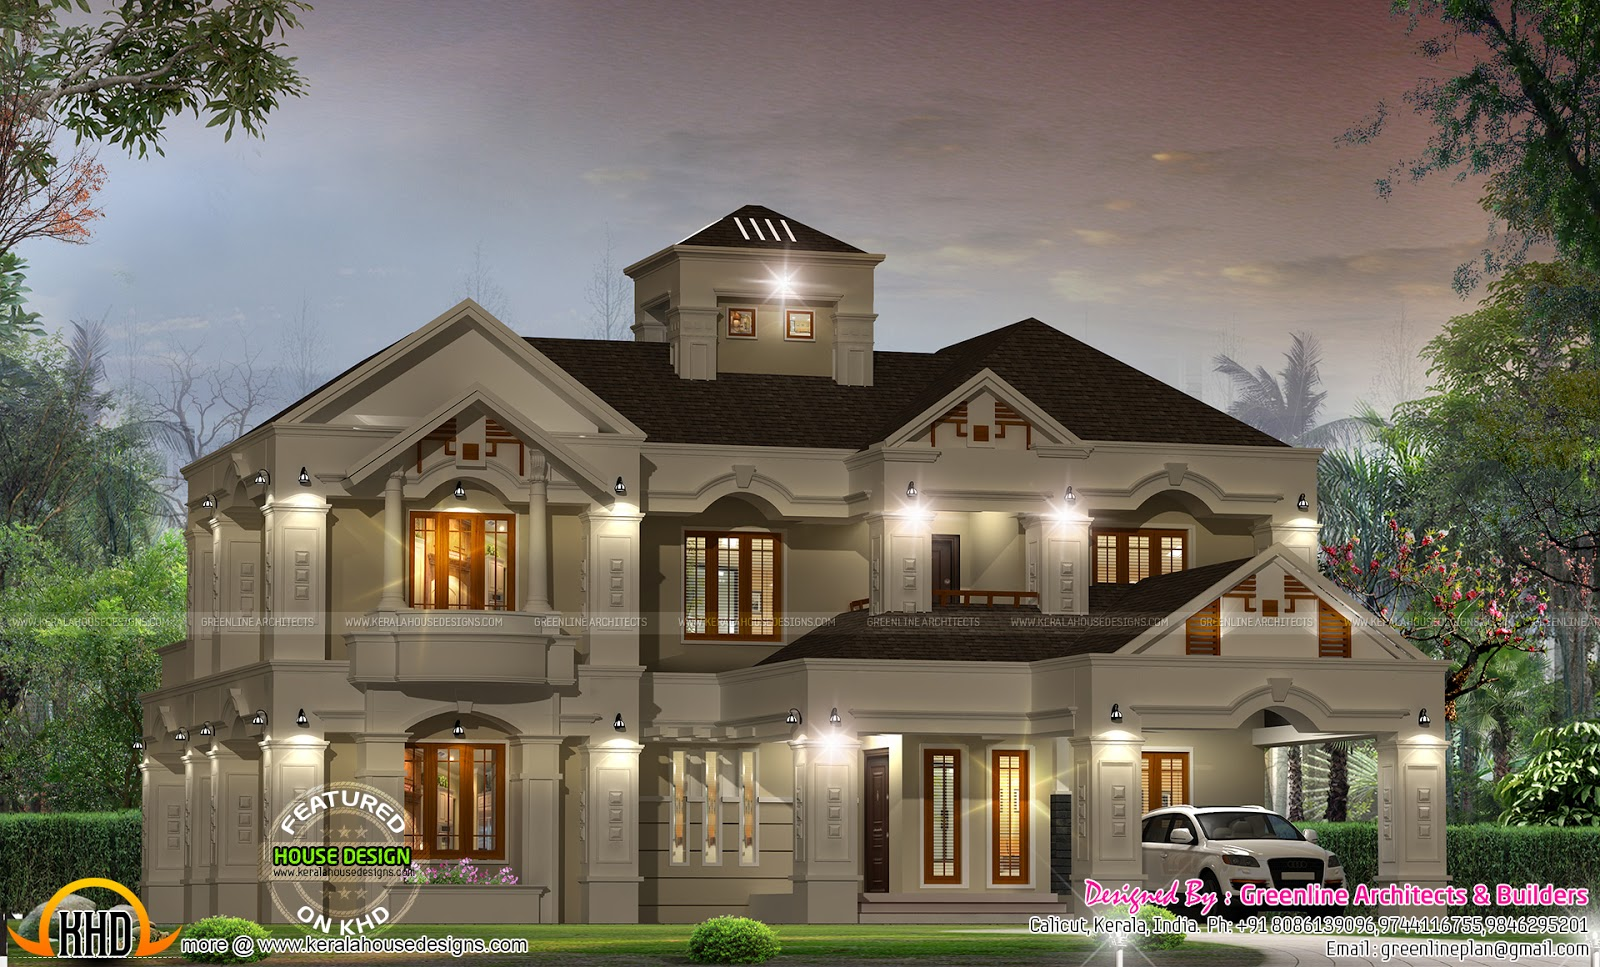 Luxury villa design in kerala kerala home design and for Colonial style home design in kerala